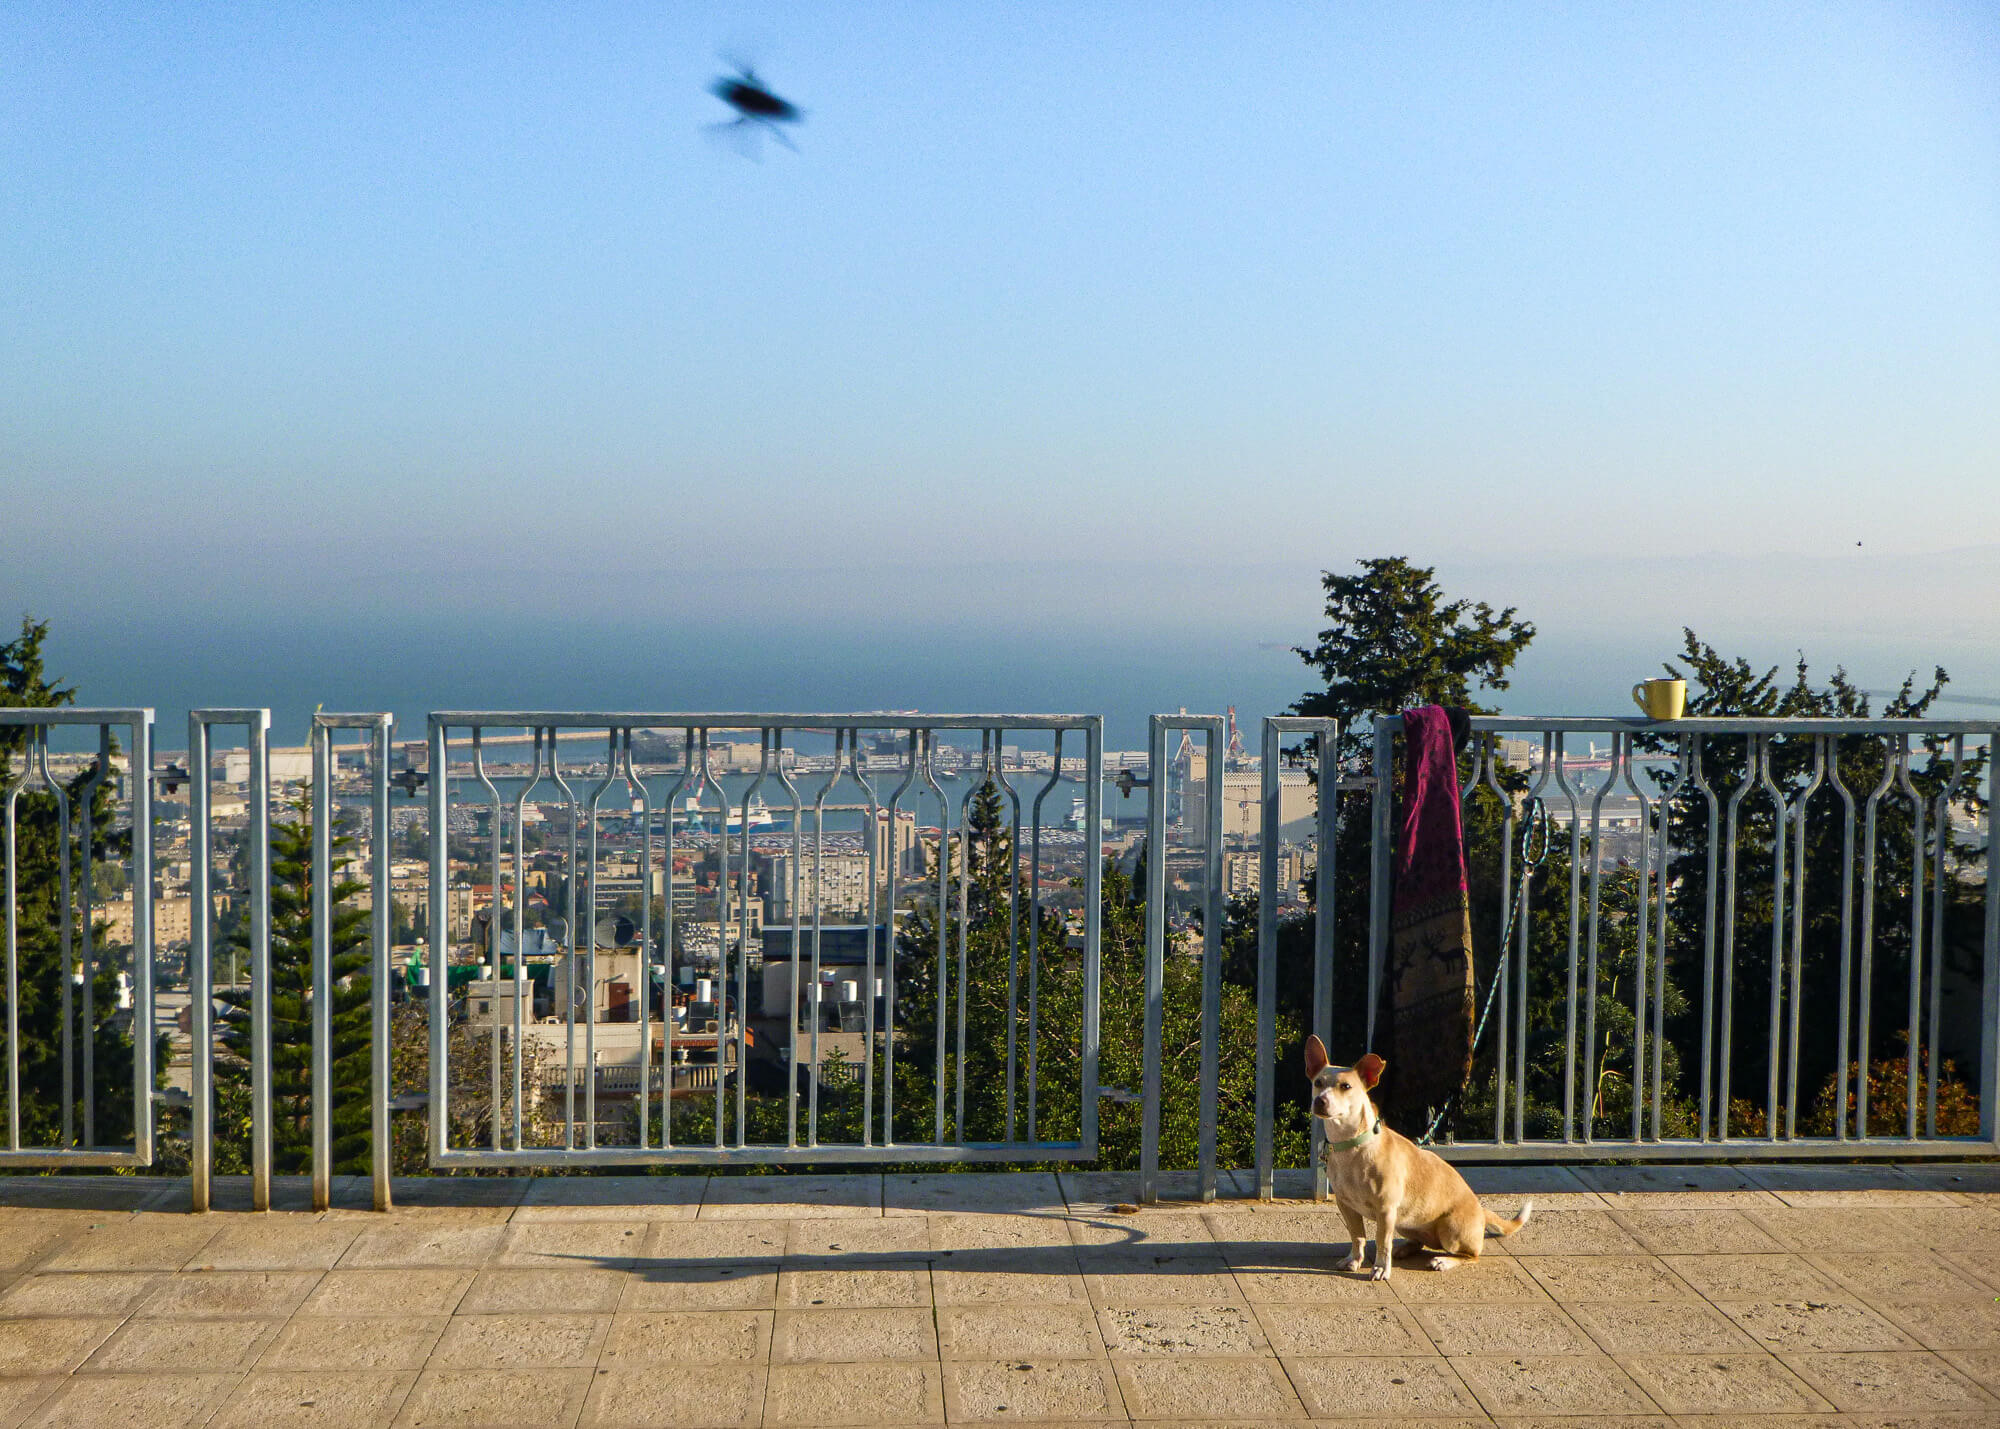 Over the Haifa port - one of my favourite destinations in Israel